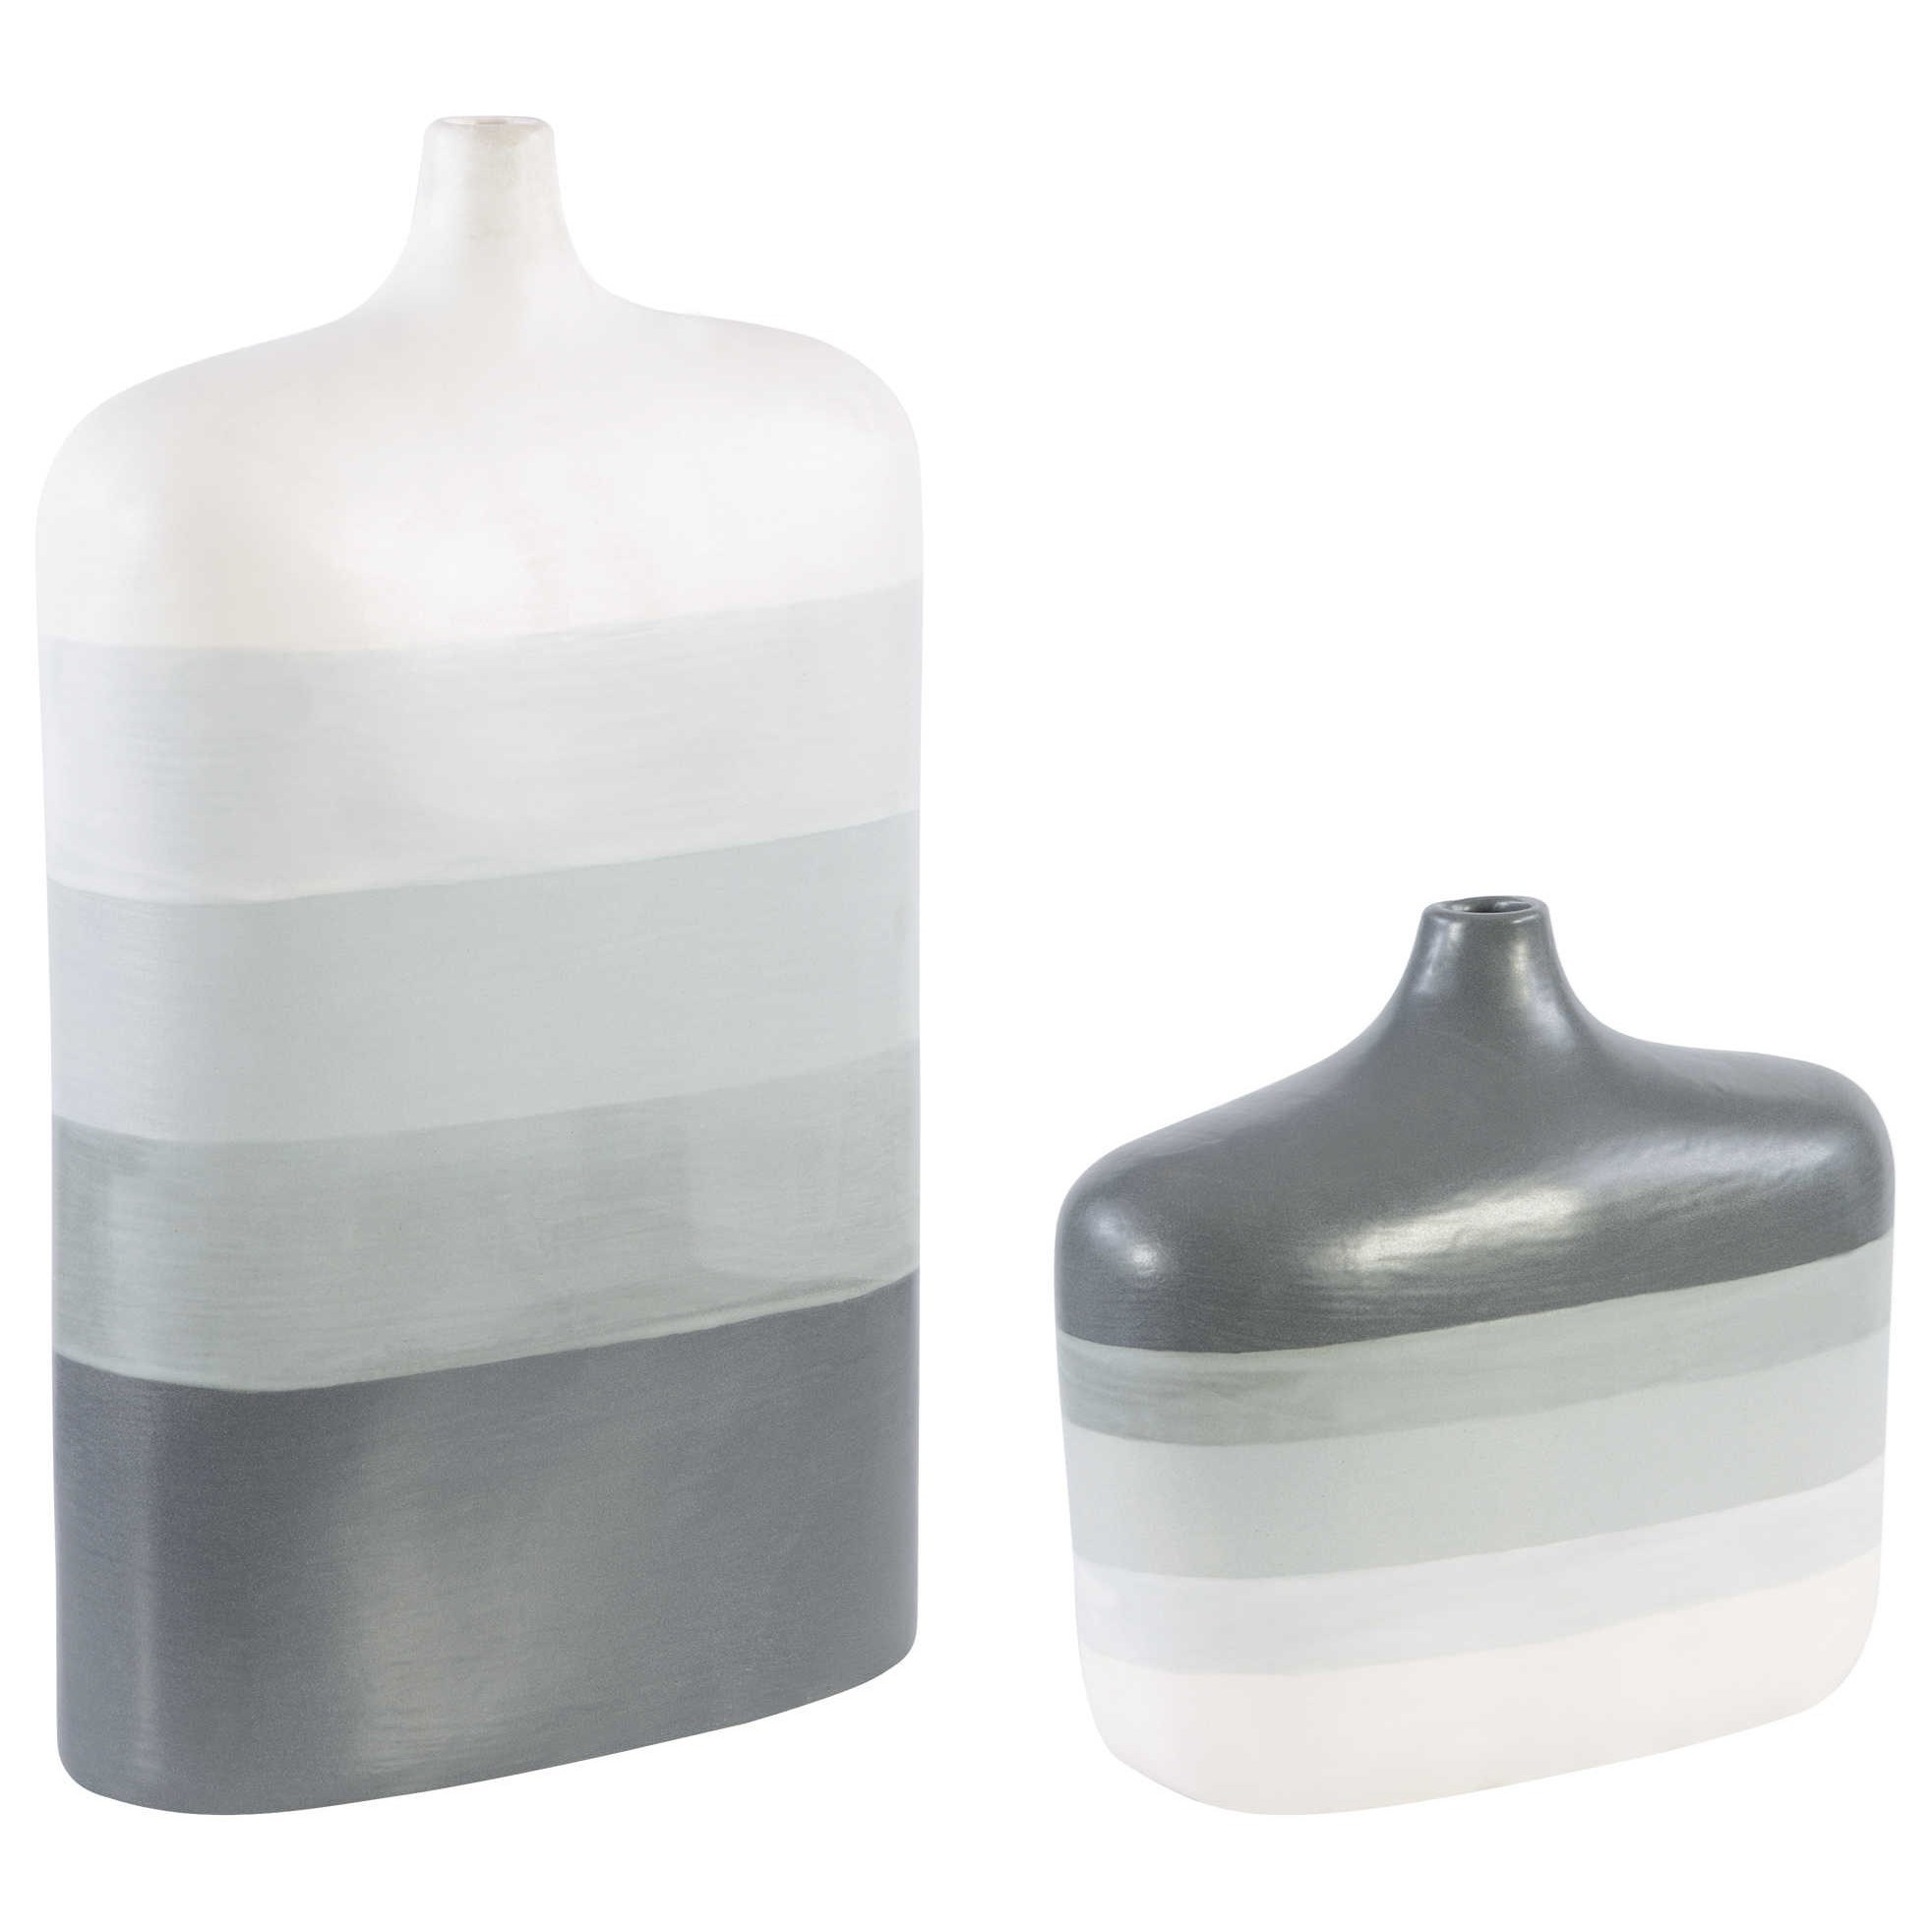 Guevara Striped Gray Vases, S/2